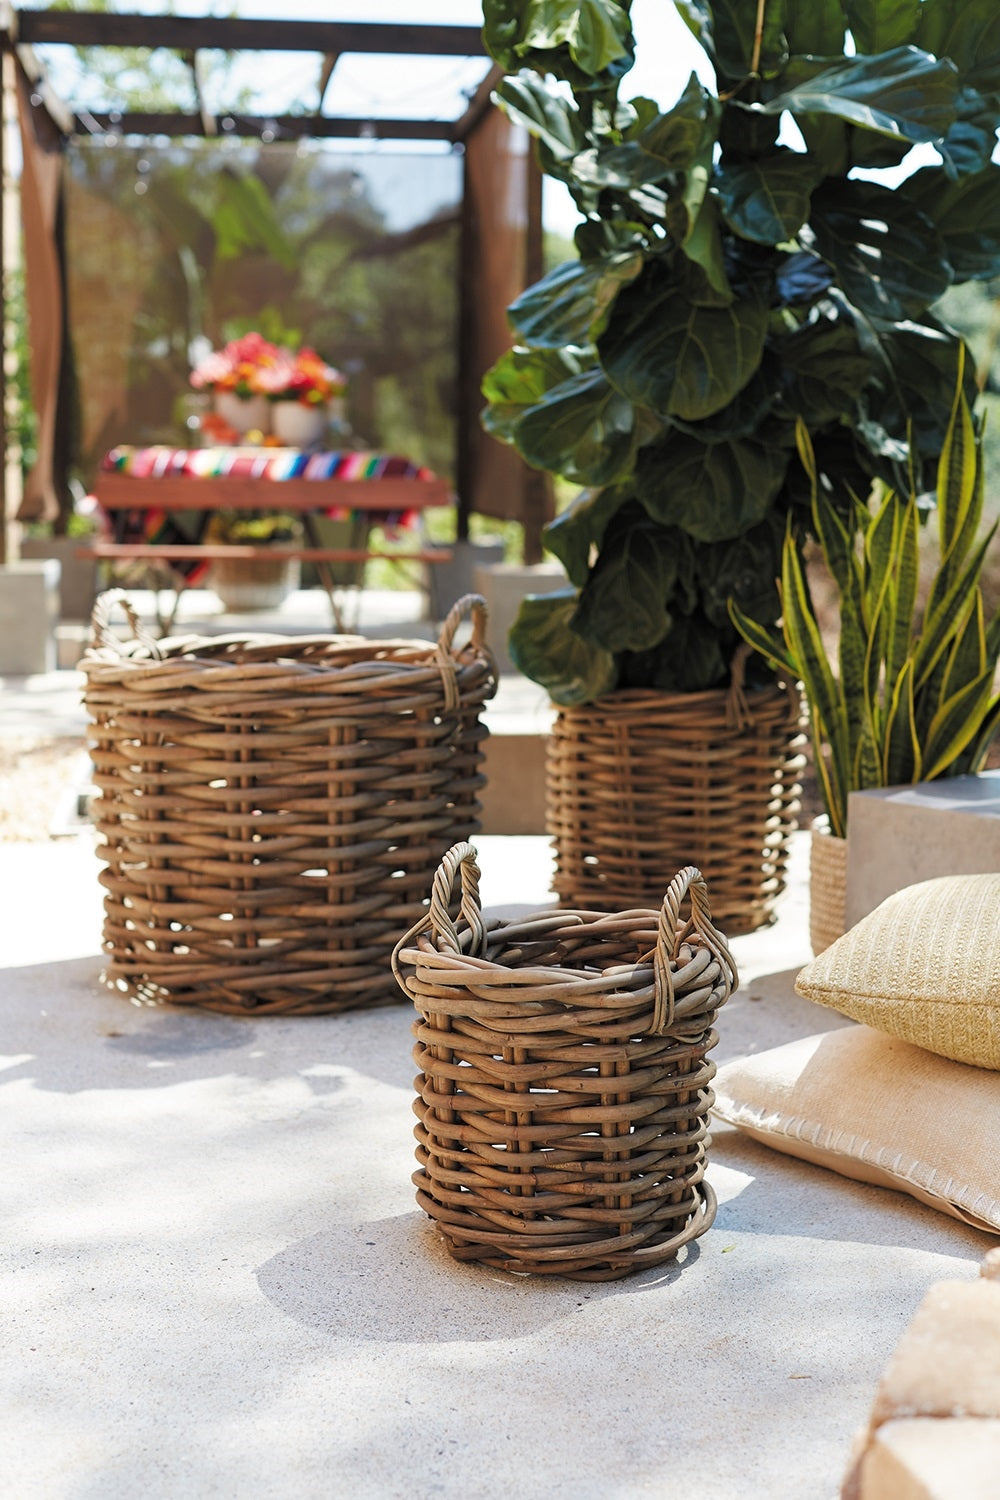 Cabana Collection Ratan Woven Wood Basket+ Bowl by Accent Decor Colonial House of Flowers Atlanta Plants Vases Containers Florist Weddings Events Georgia Southern South